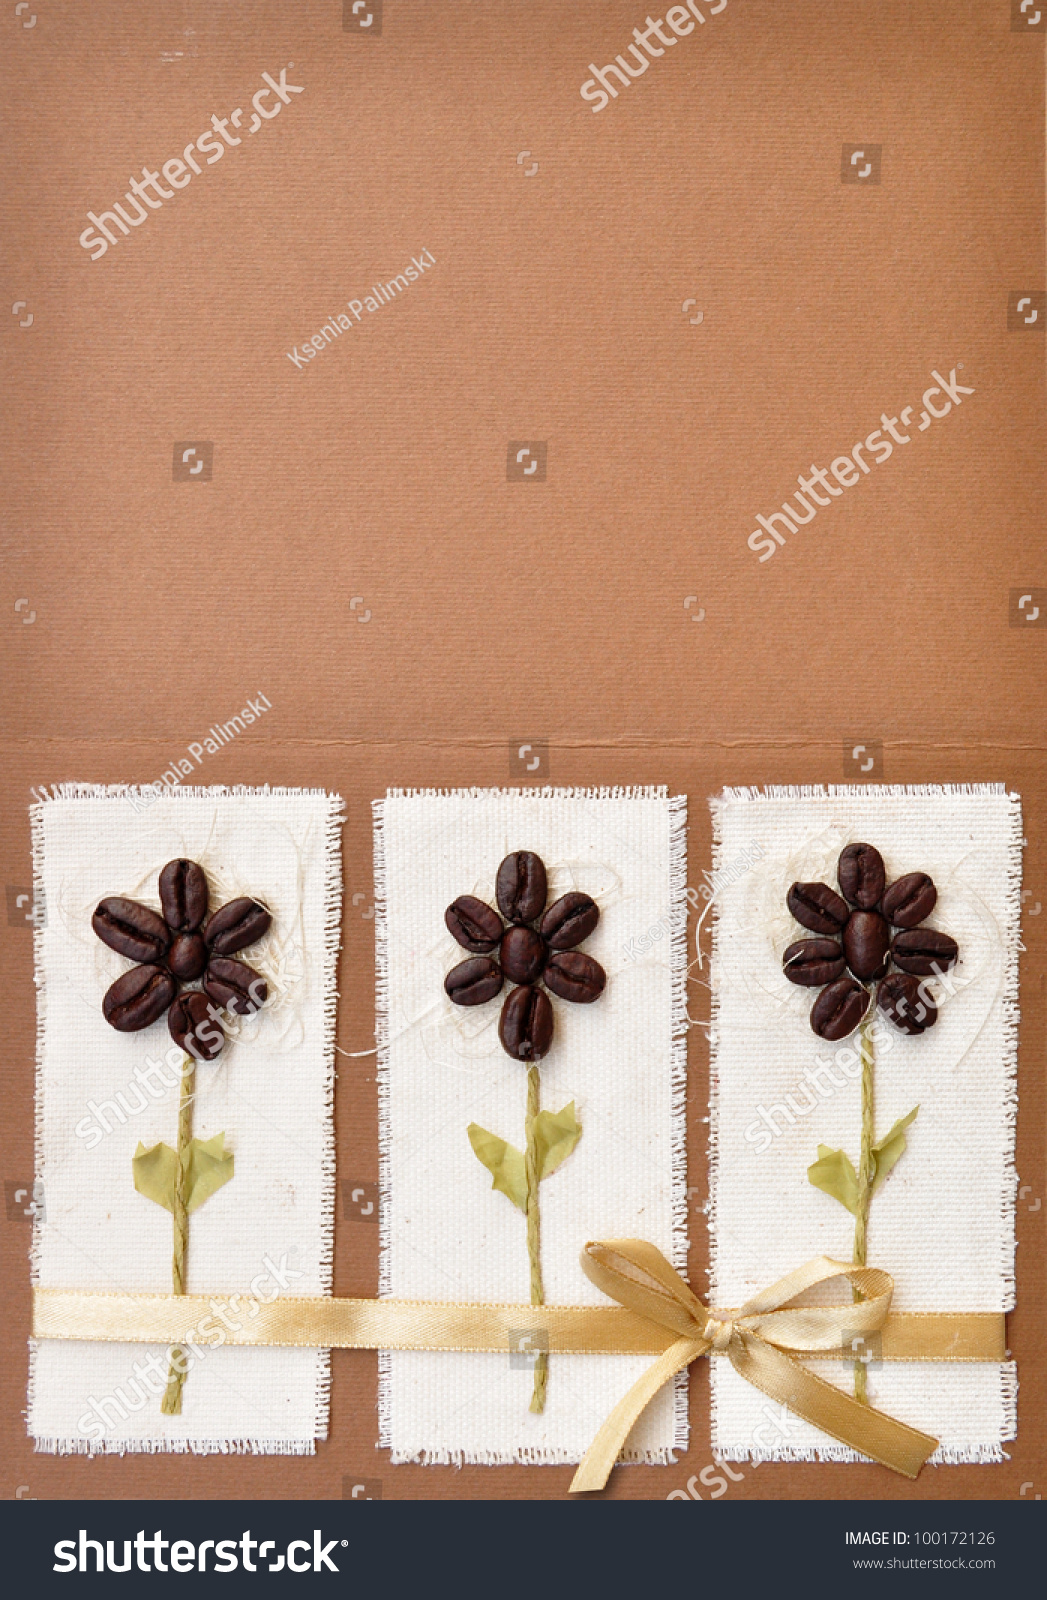 Handmade Paper Book Cover : Handmade paper card with coffee beans flower design and a